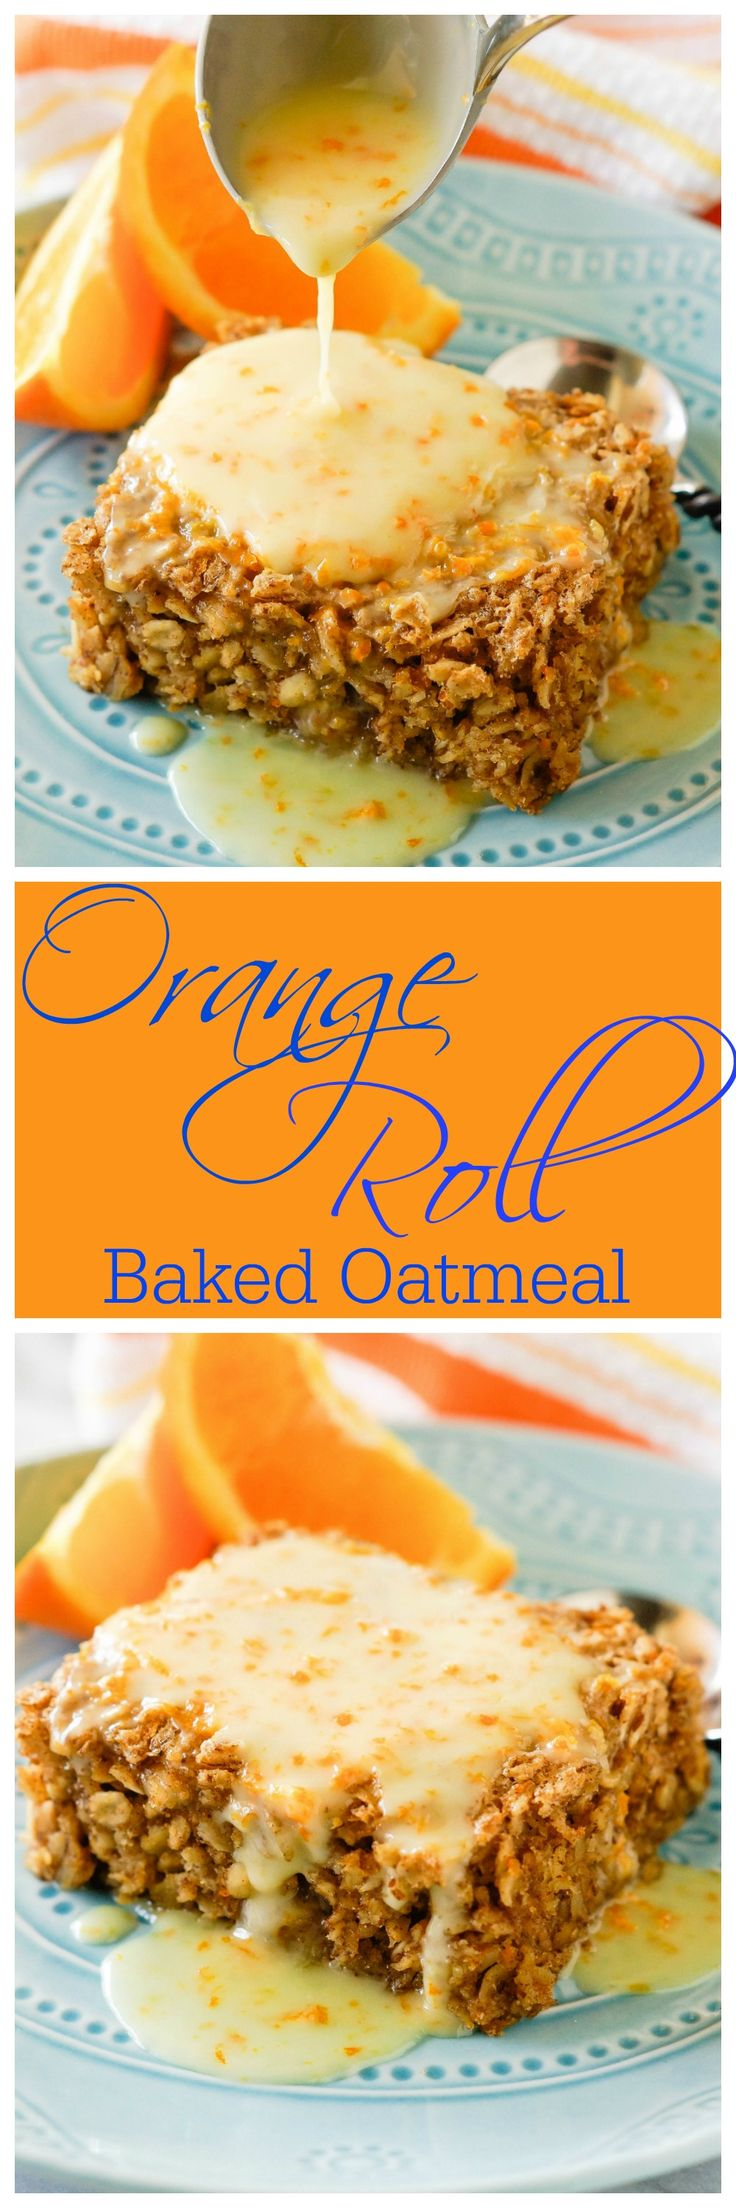 Orange Roll Baked Oatmeal